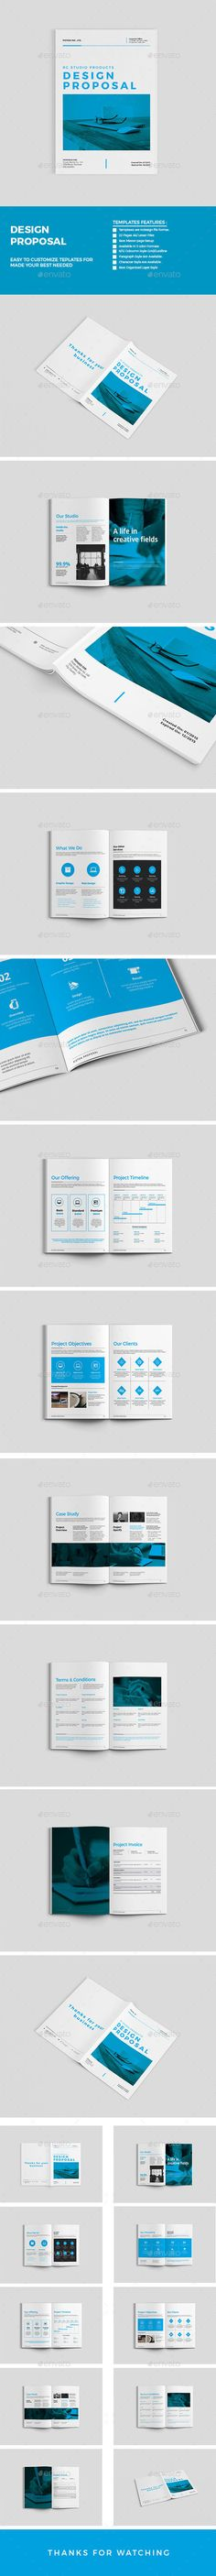 Sleman Clean Proposal Template Proposal templates, Proposals and - business proposal template word